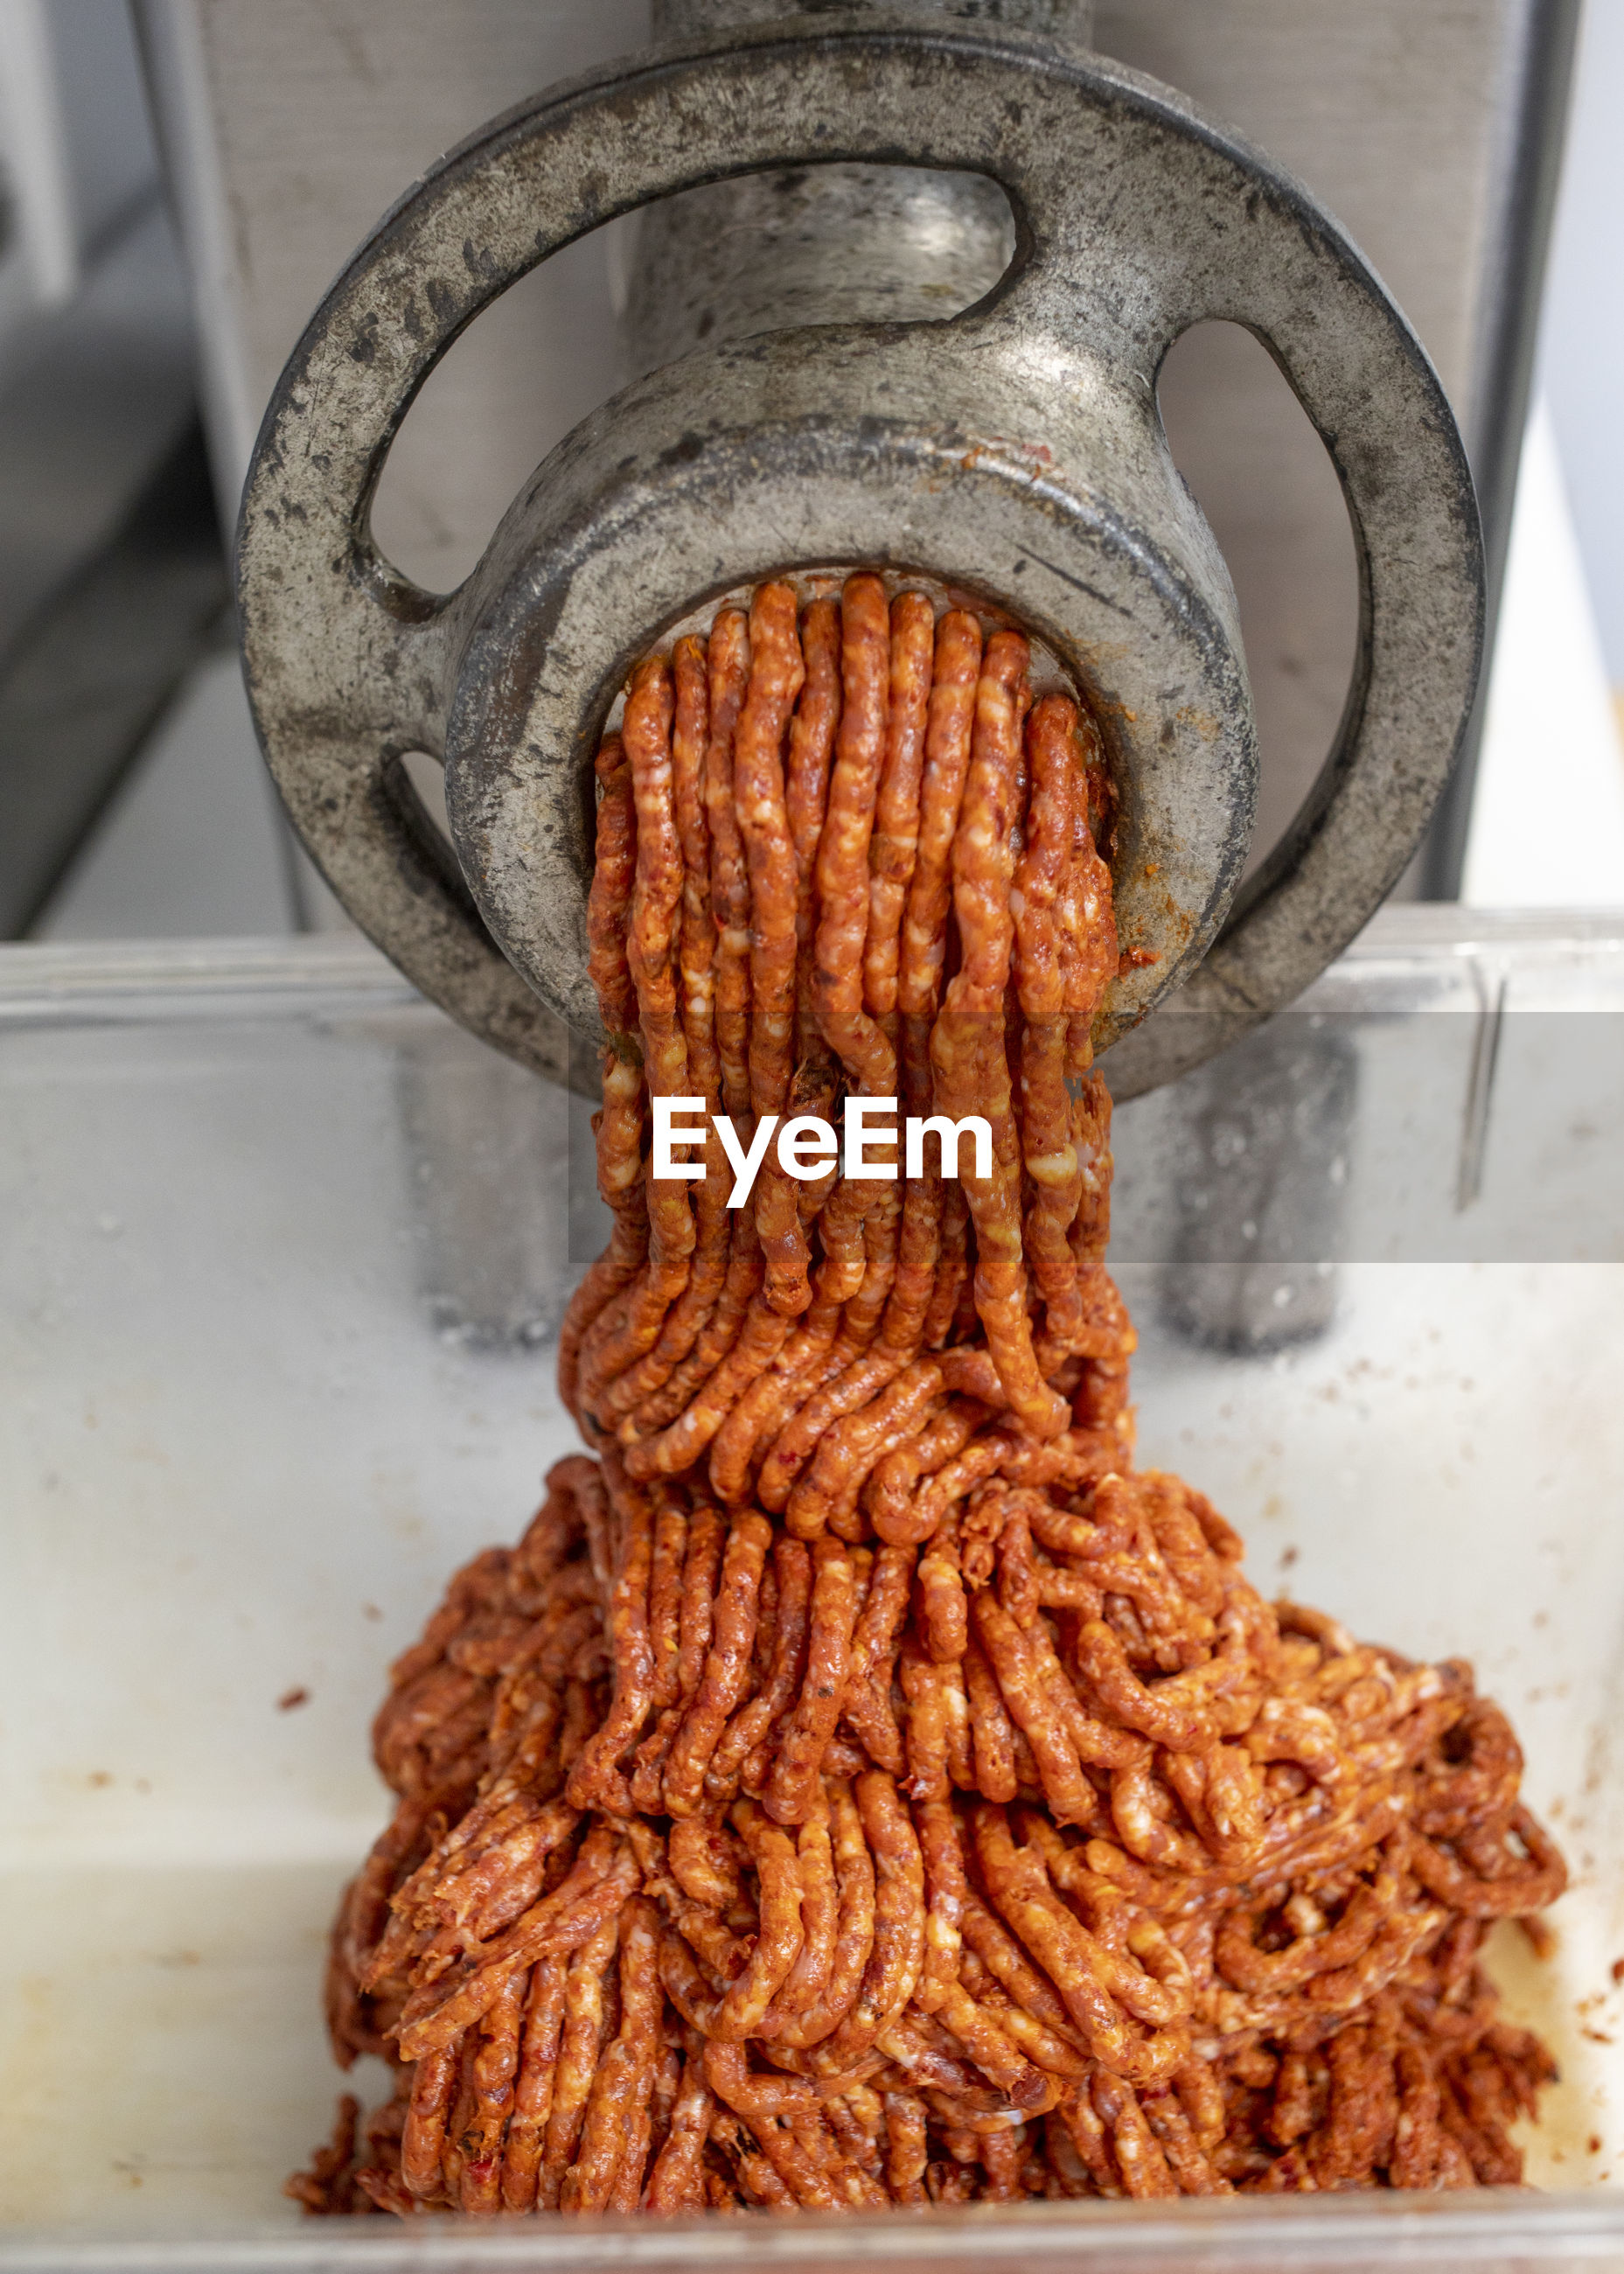 HIGH ANGLE VIEW OF MEAT ON METAL